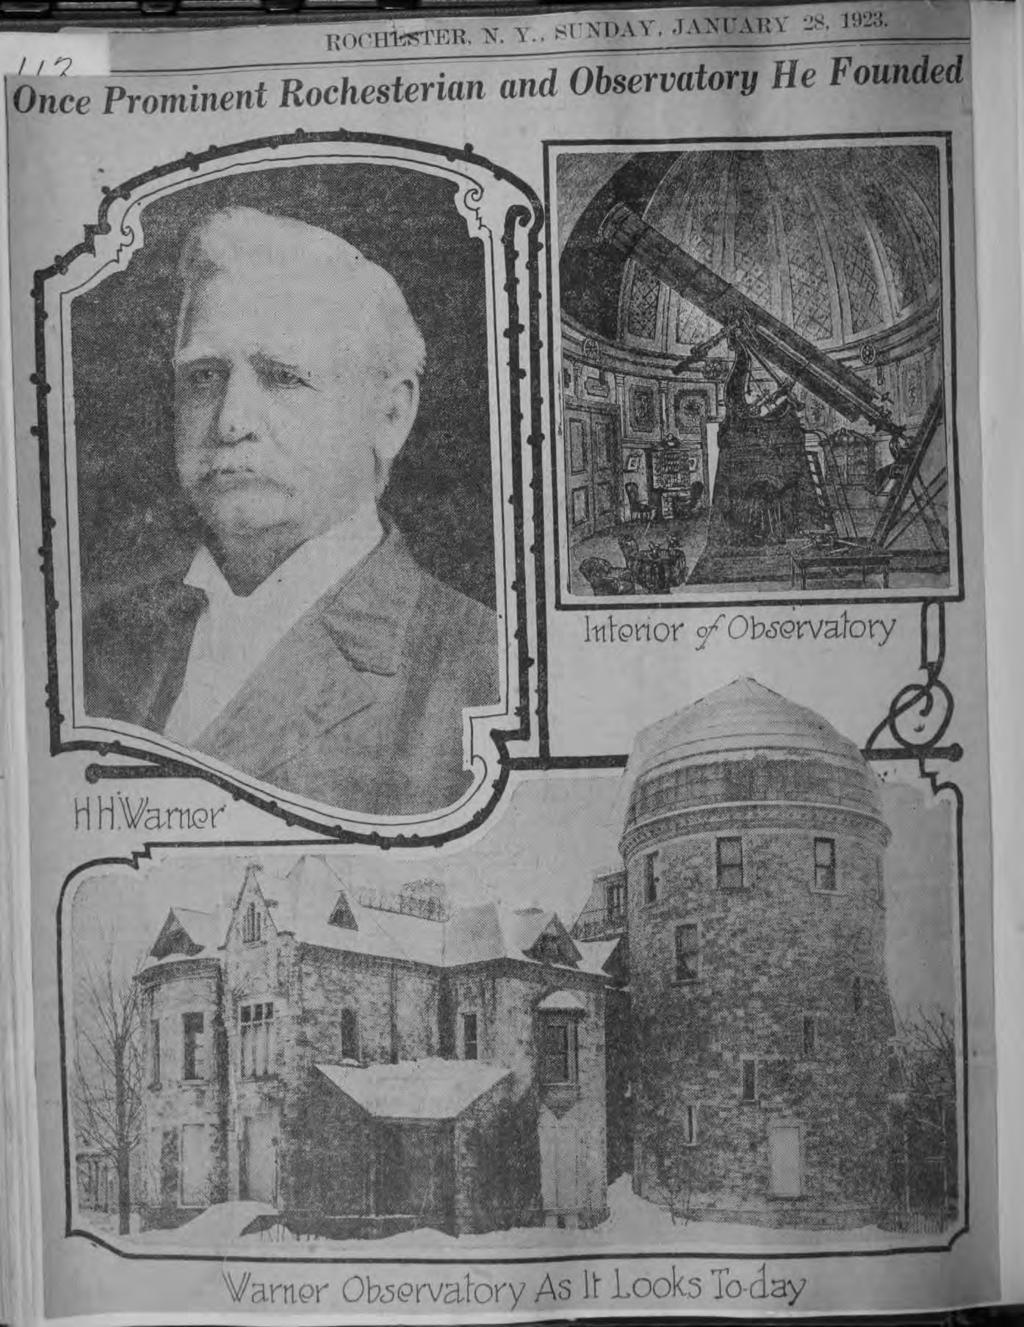 Central Lbrary of Rochester and Monroe County ^rmm-eb K T Hstorc Scrapbooks Collecton